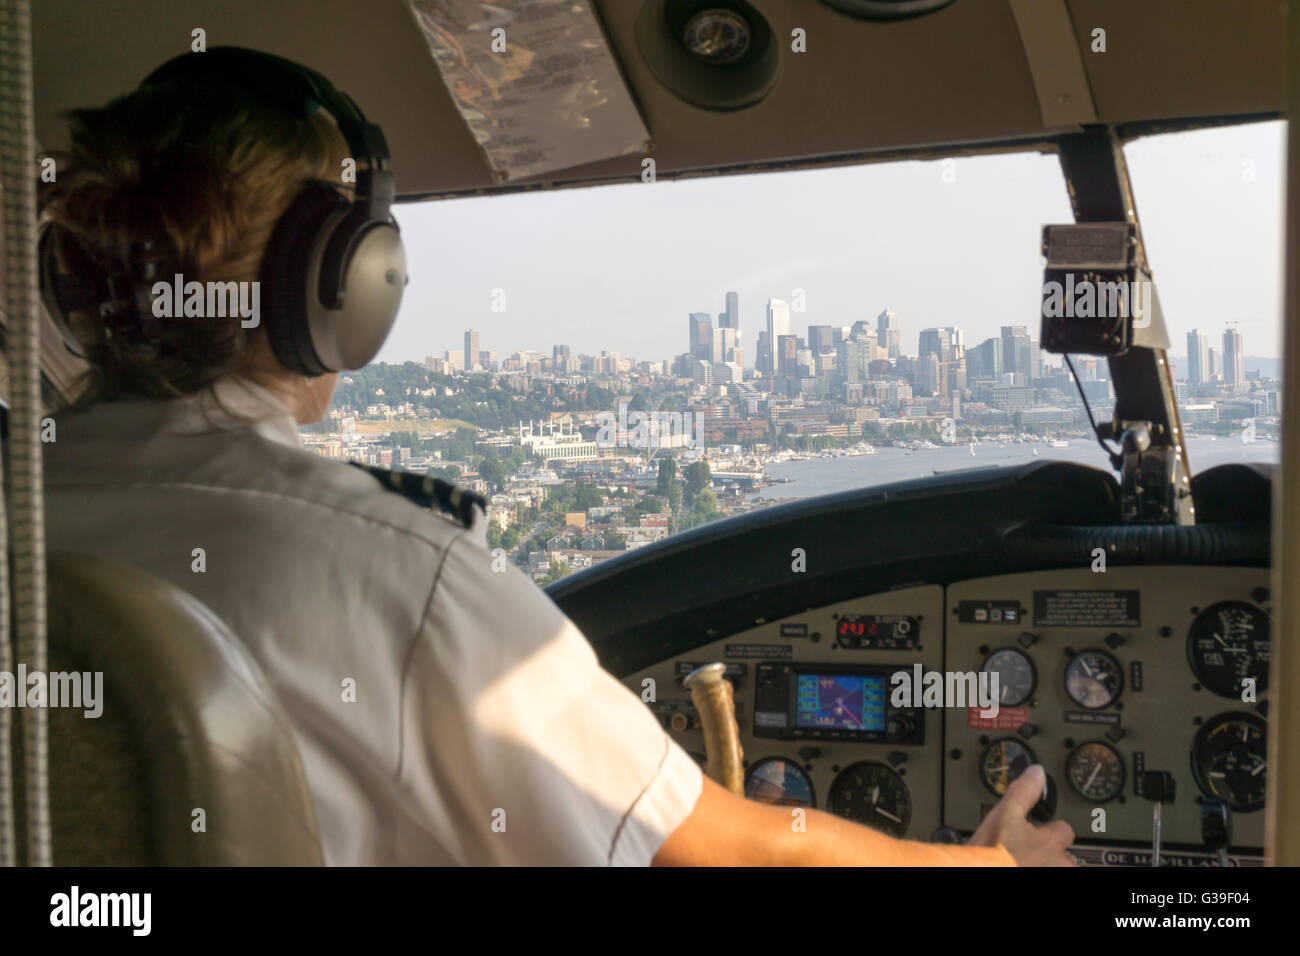 Female pilot of float plane coming in to land on Lake Union, Seattle with the city skyline seen through the cockpit - Stock Image